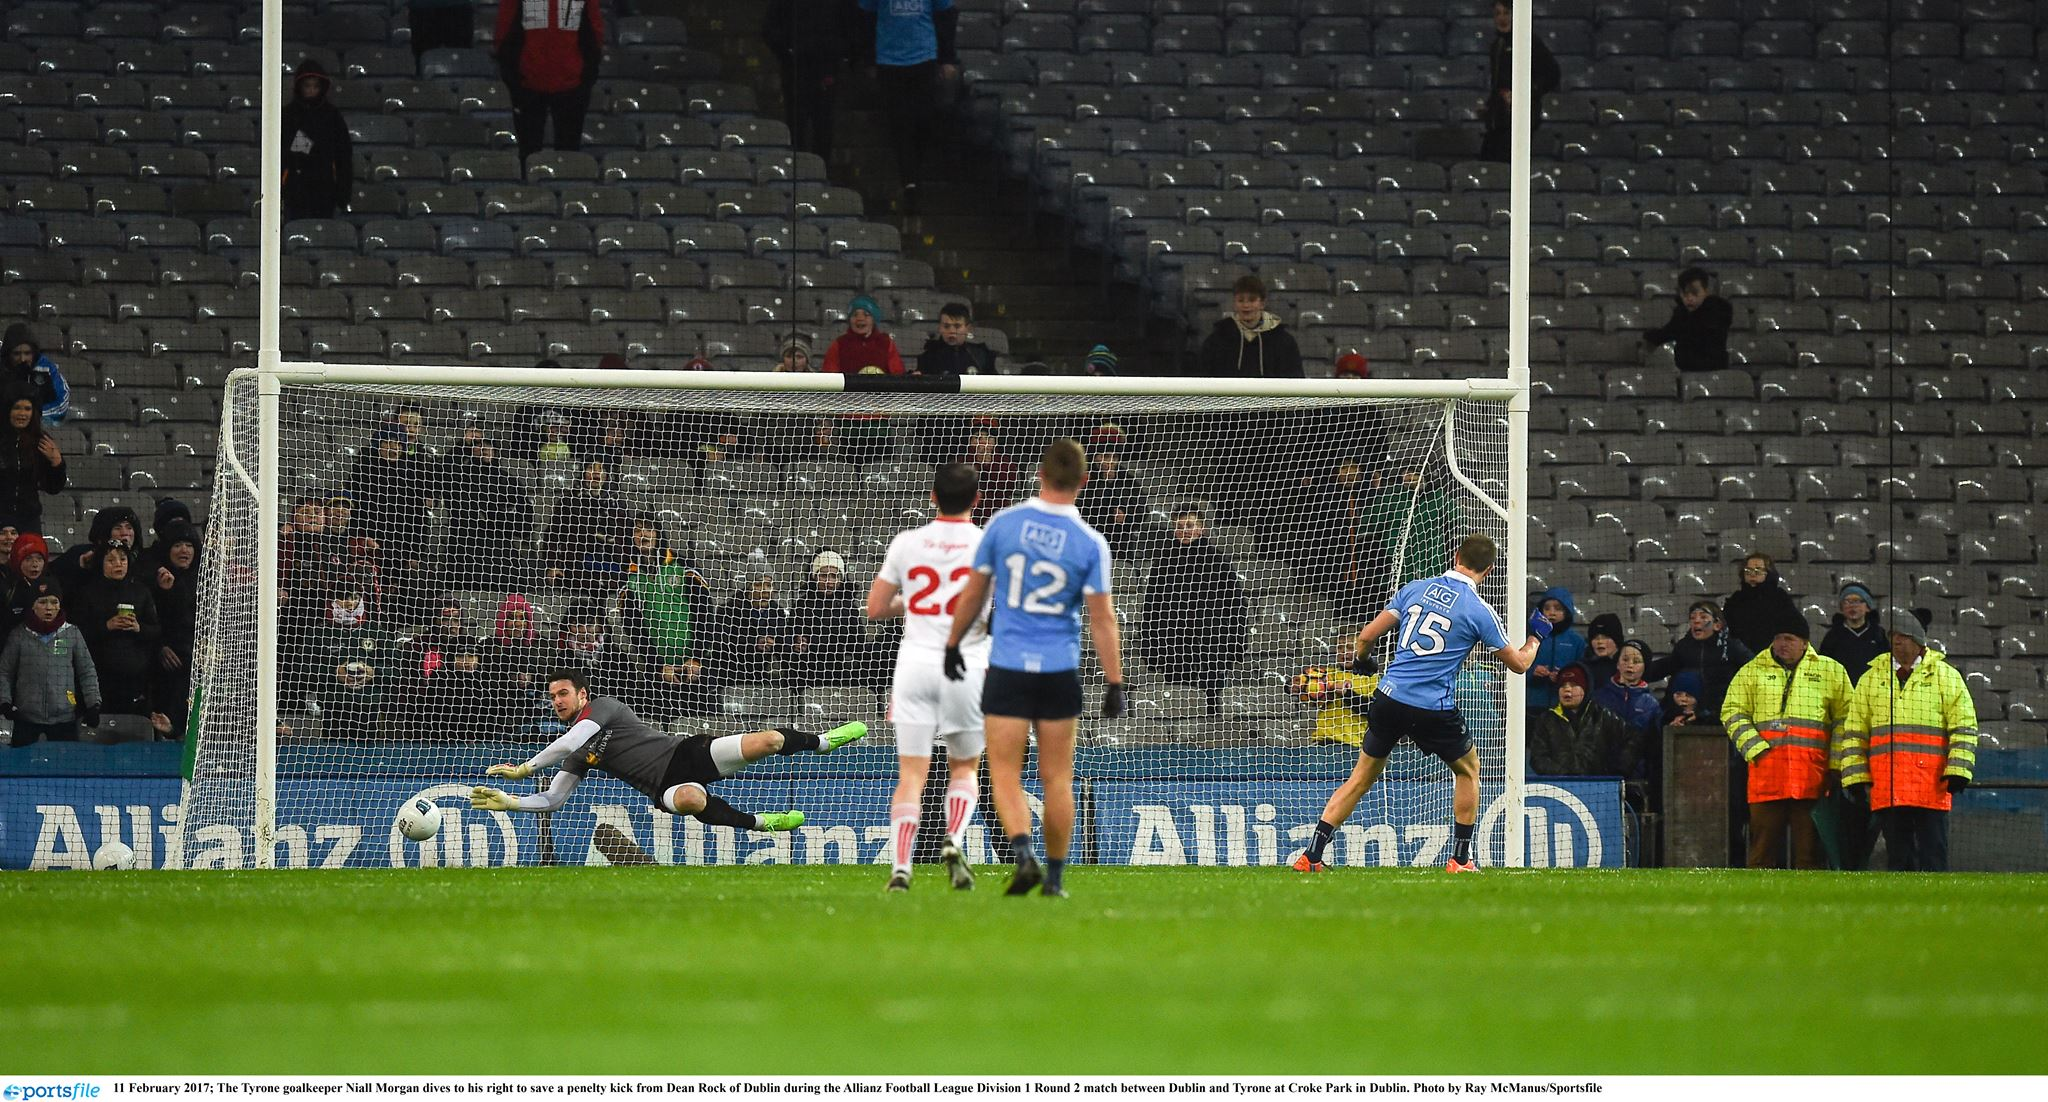 Tyrone share spoils with All Ireland Champions